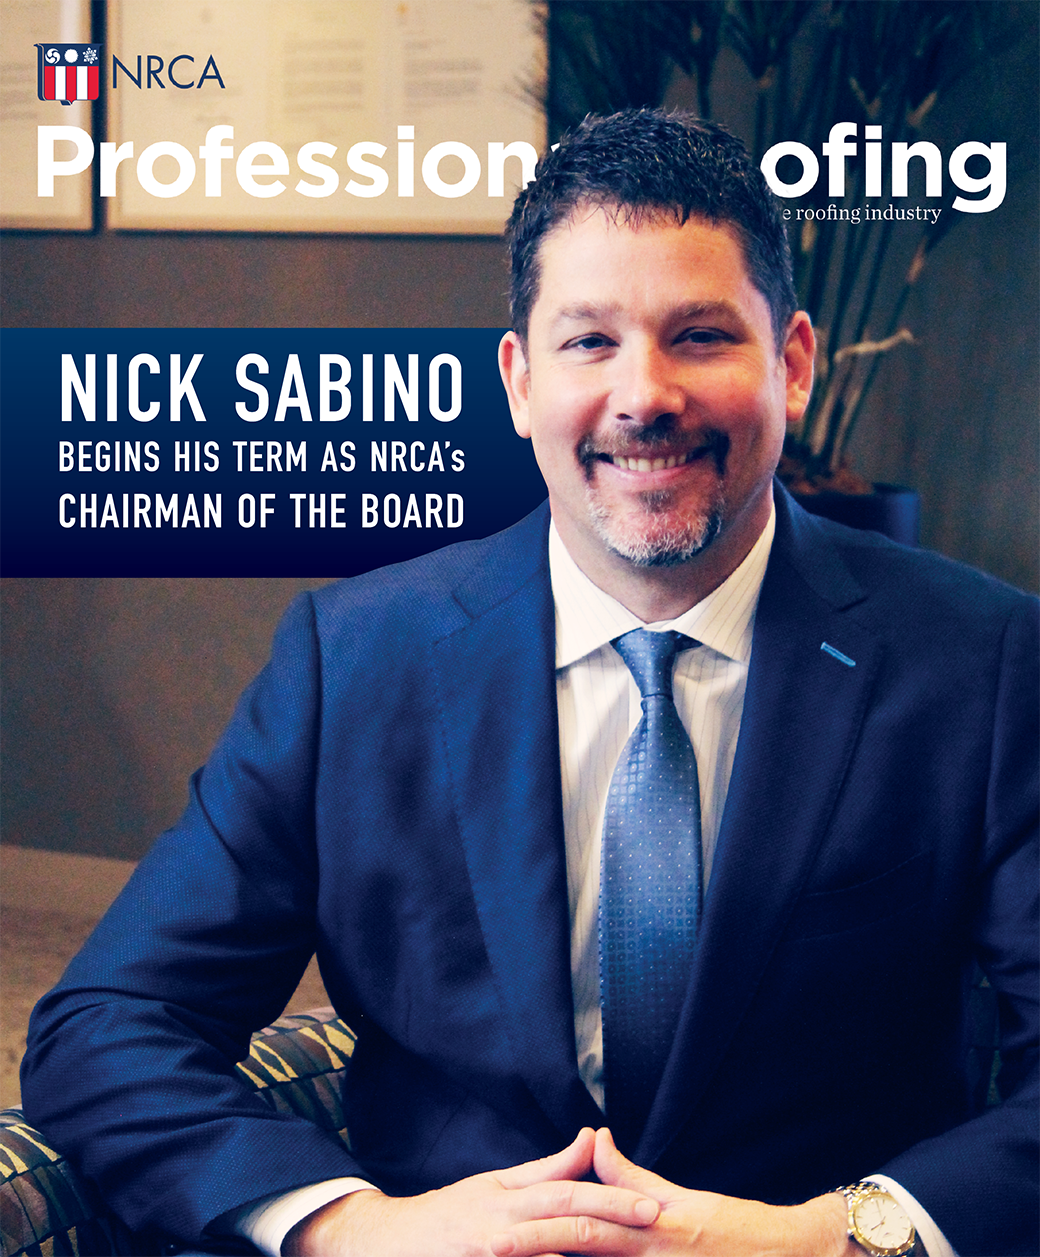 Professional Roofing Magazine 6/1/2019